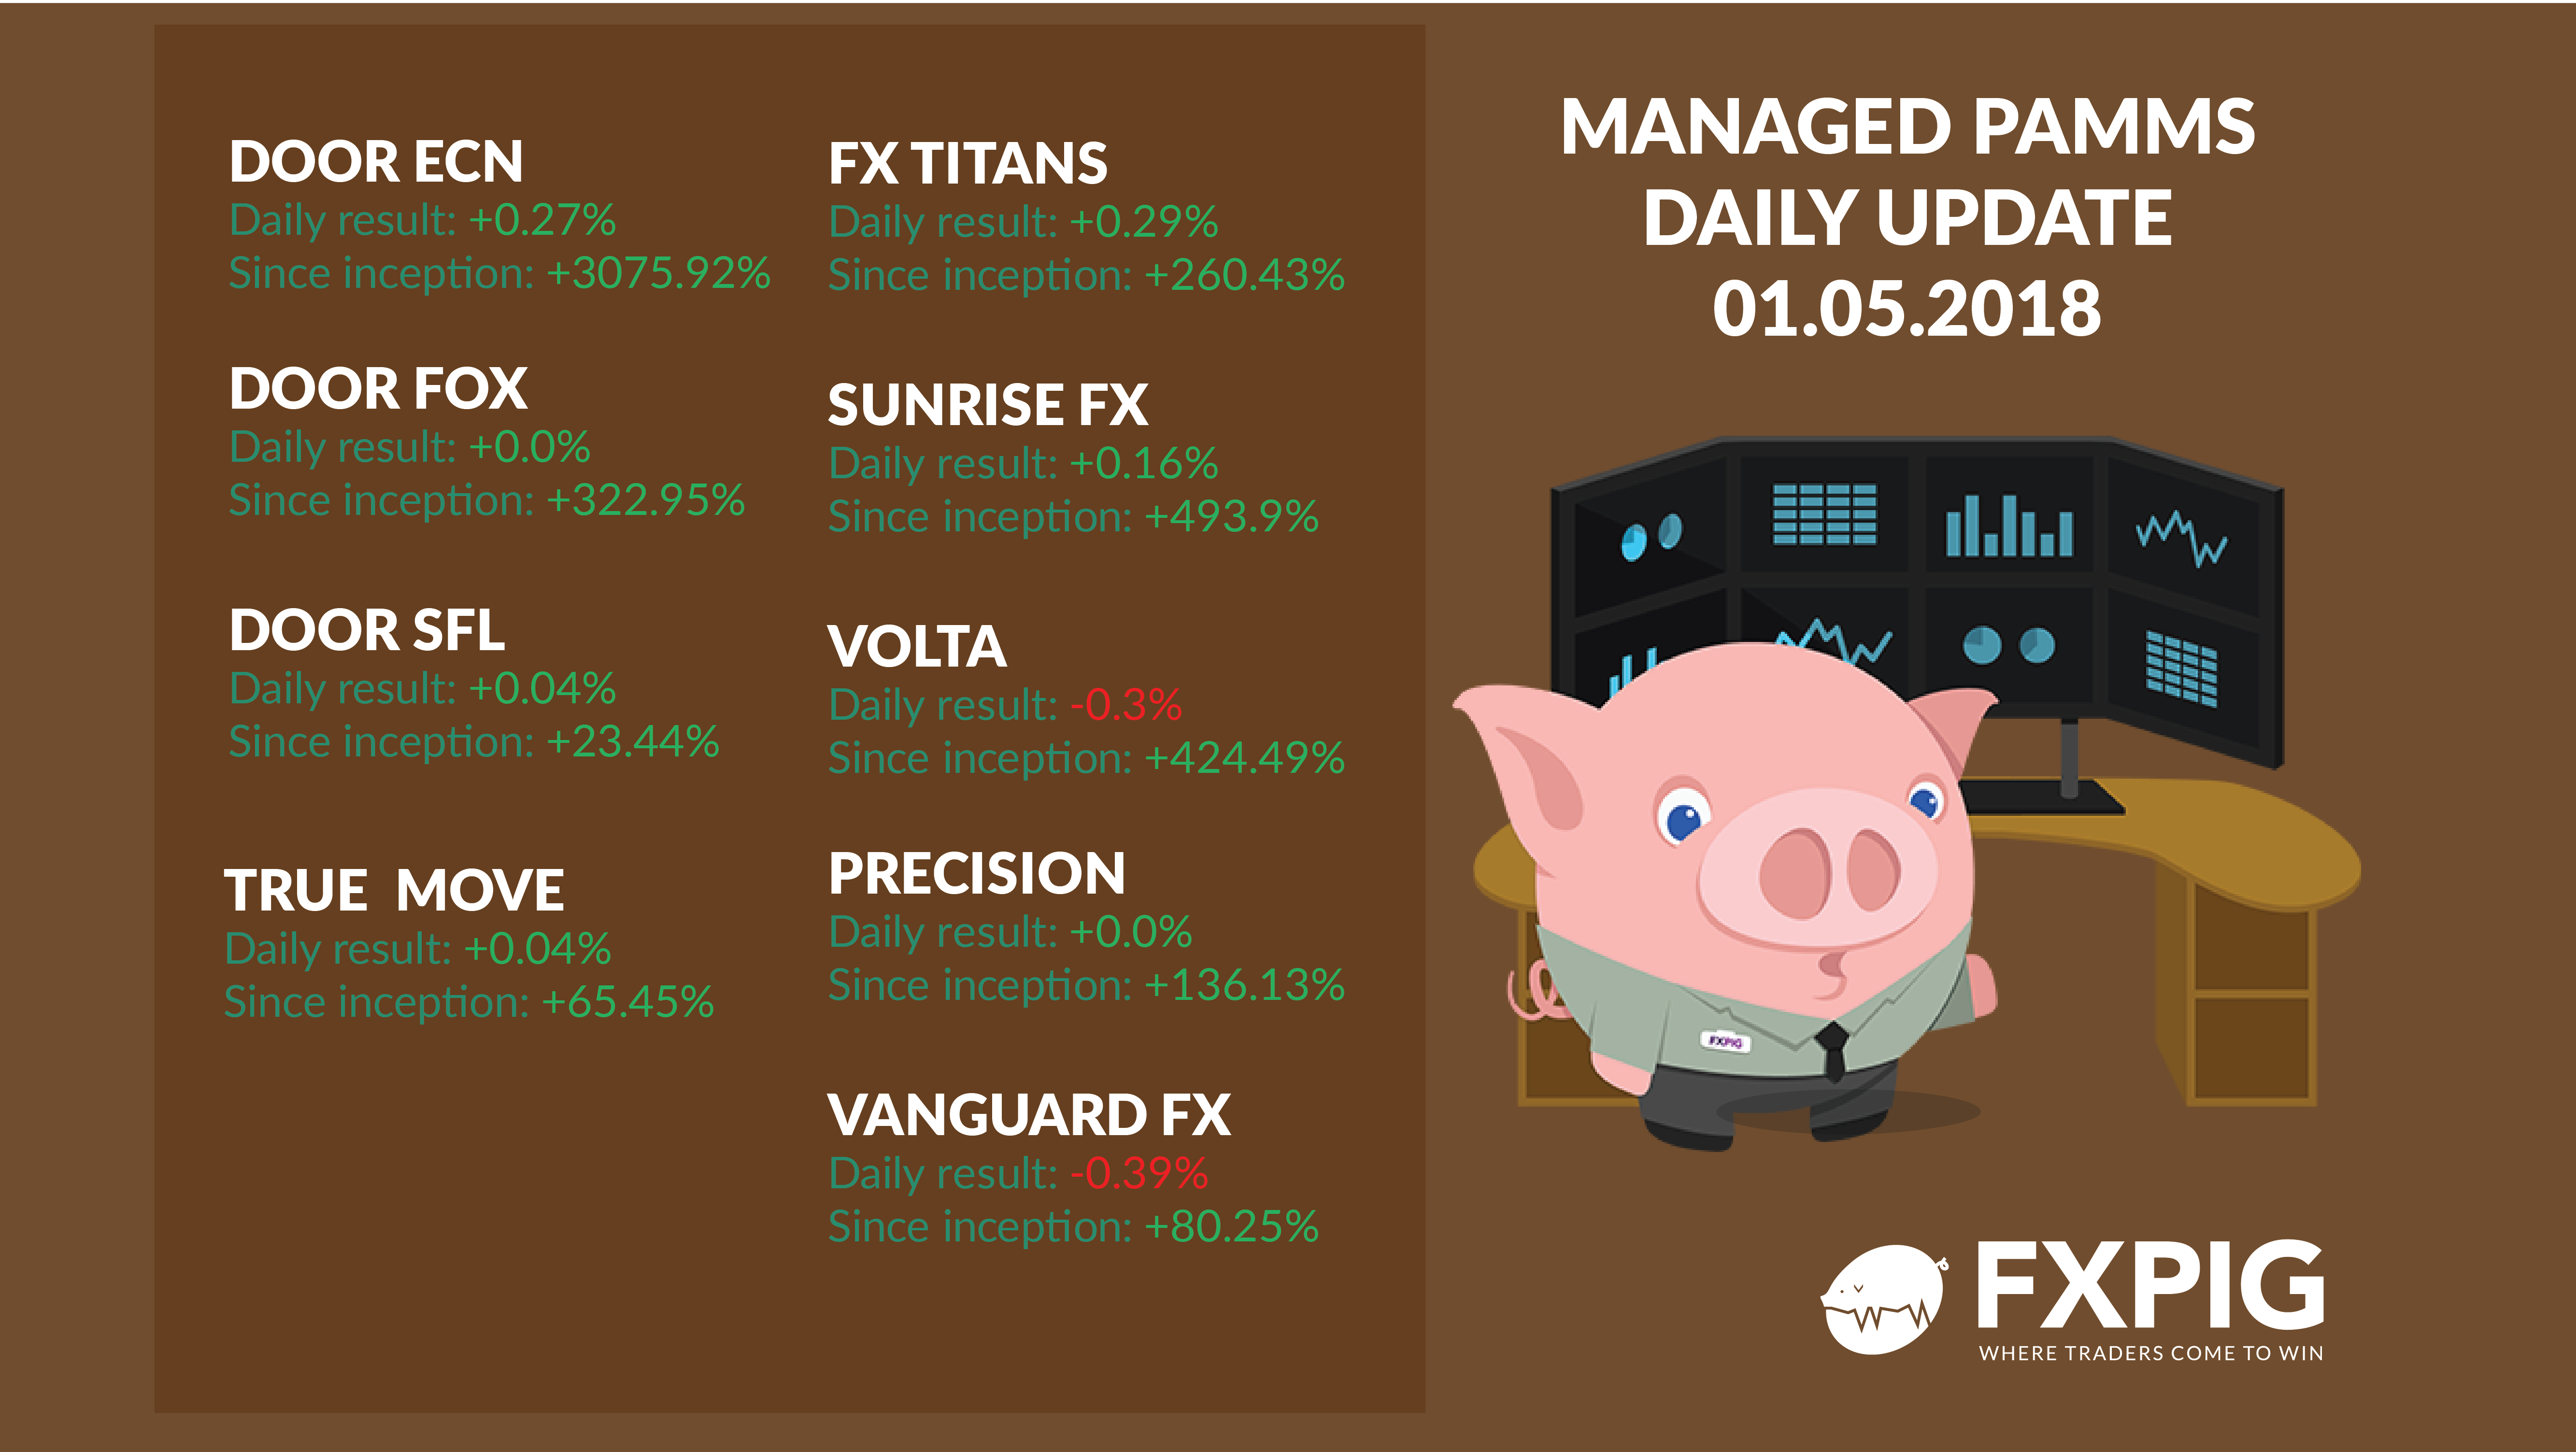 FOREX_Daily-managed-accounts-0105_FXPIG